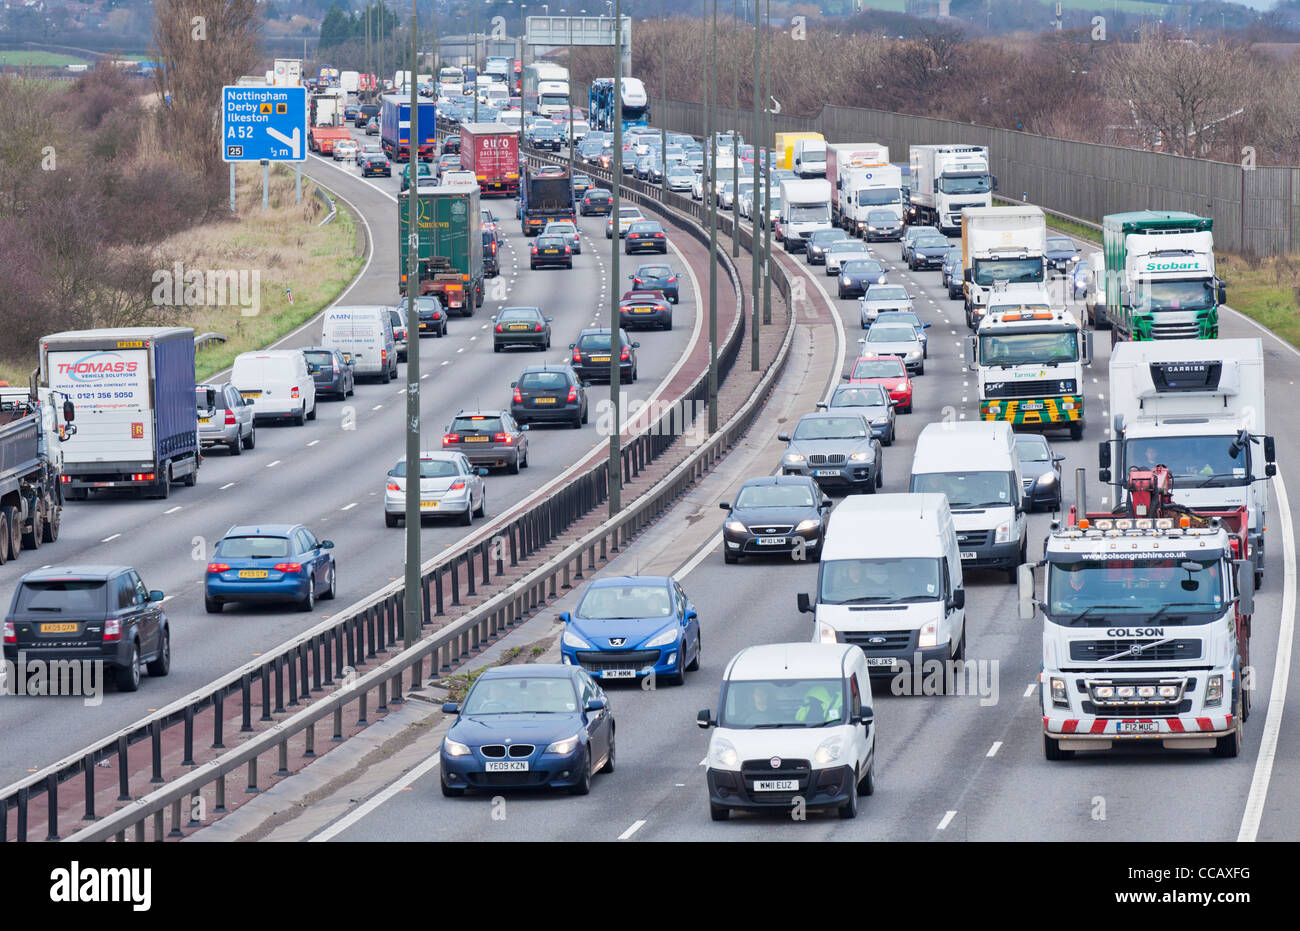 Motorway Traffic Jam on the M1 motorway near junction 25 Nottingham England gb uk eu europe - Stock Image